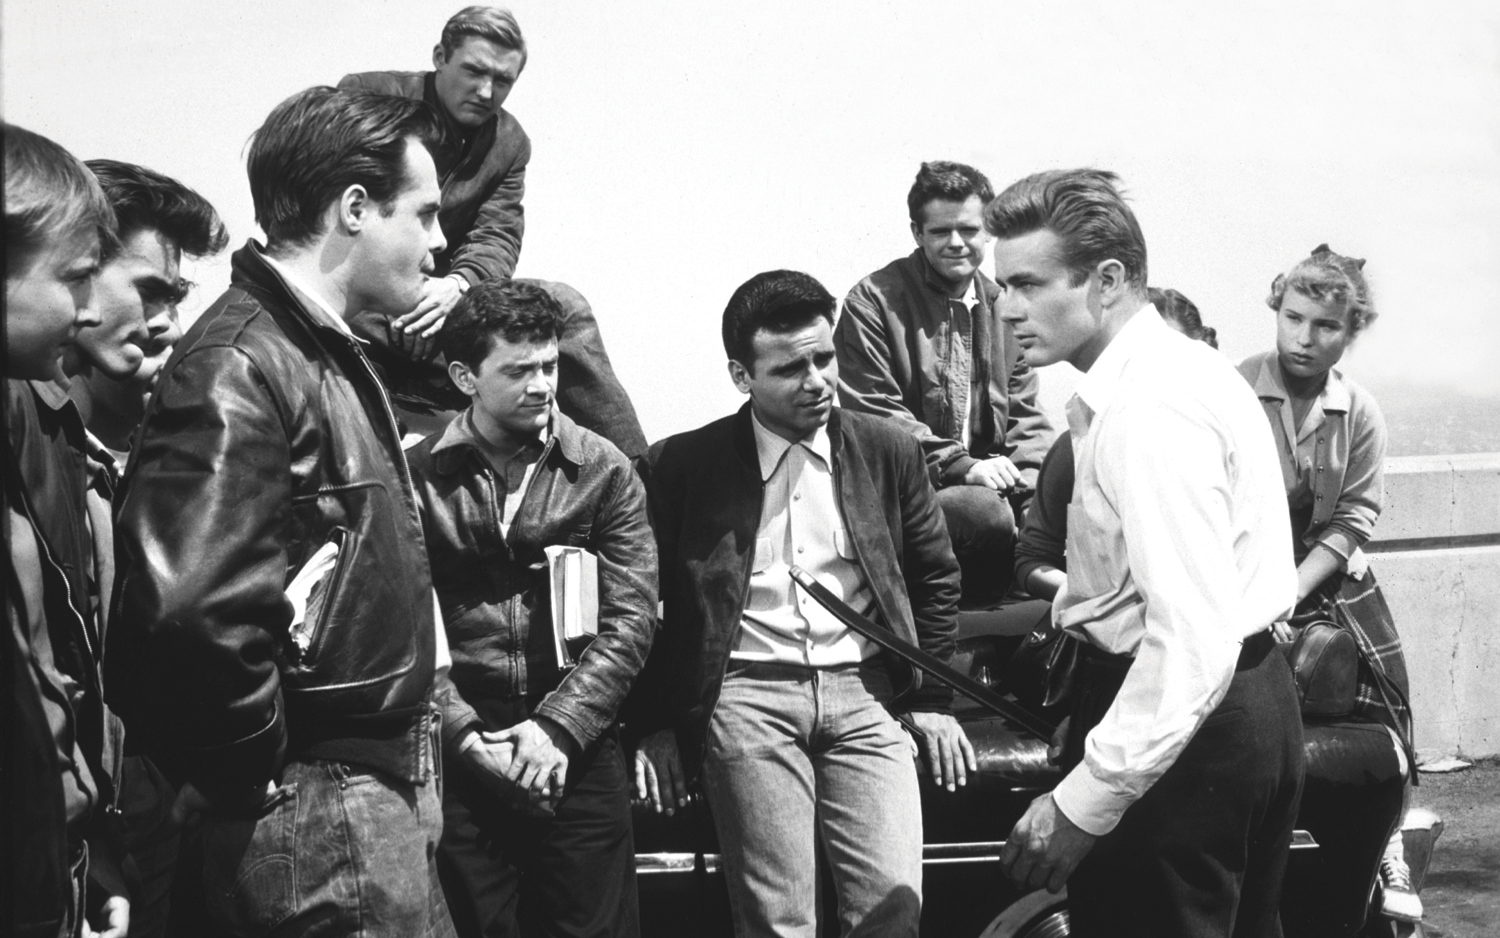 James Dean, Dennis Hopper, Corey Allen, Nick Adams, Jack Grinnage, Beverly Long, and Frank Mazzola in Rebel Without a Cause (1955)